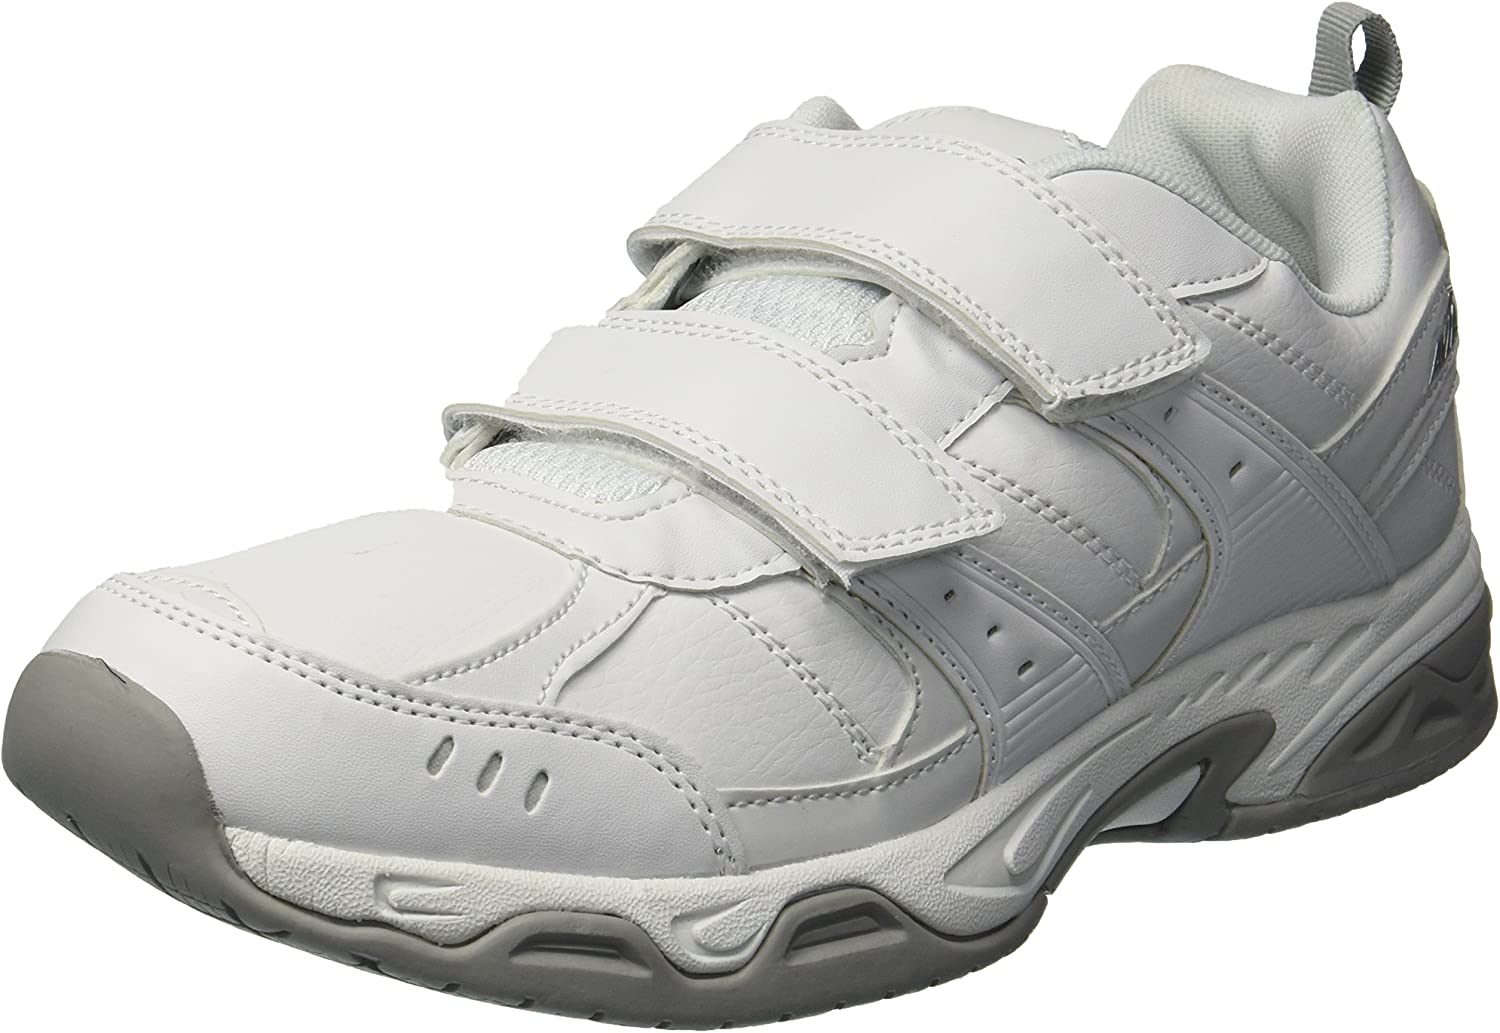 AVIA Men's Avi-Union II Strap Food Service shoes, White Chrome Silver, 11 Wide US